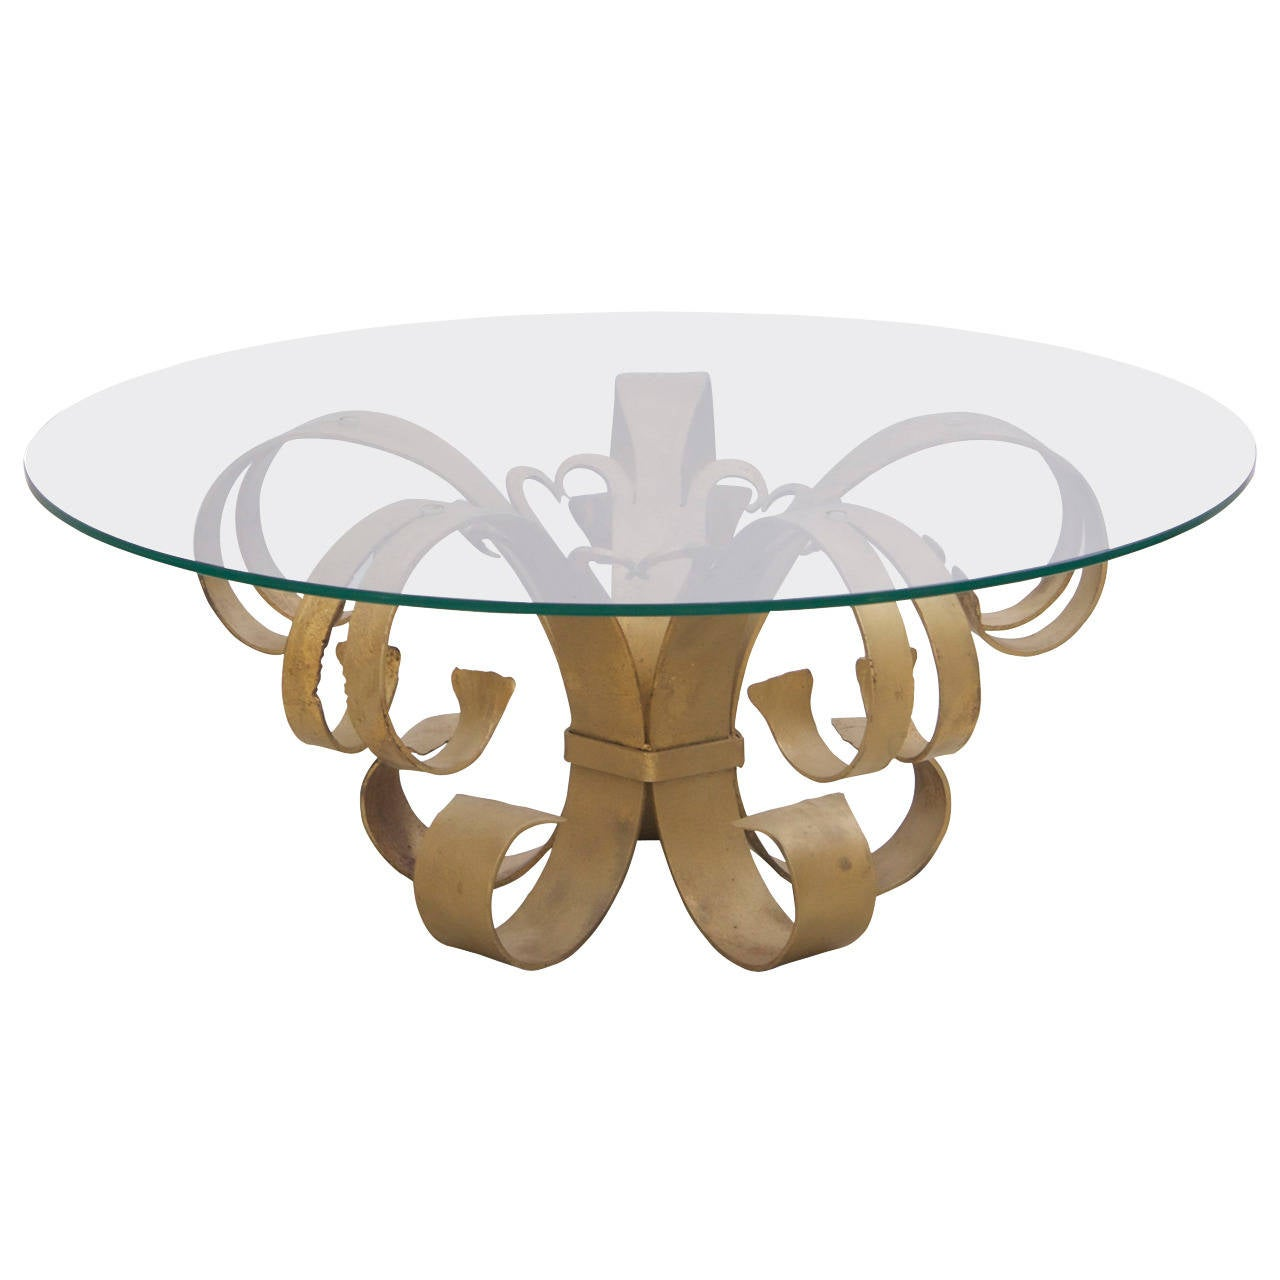 Huge Hollywood Regency Wrought Iron Italian Coffee Table